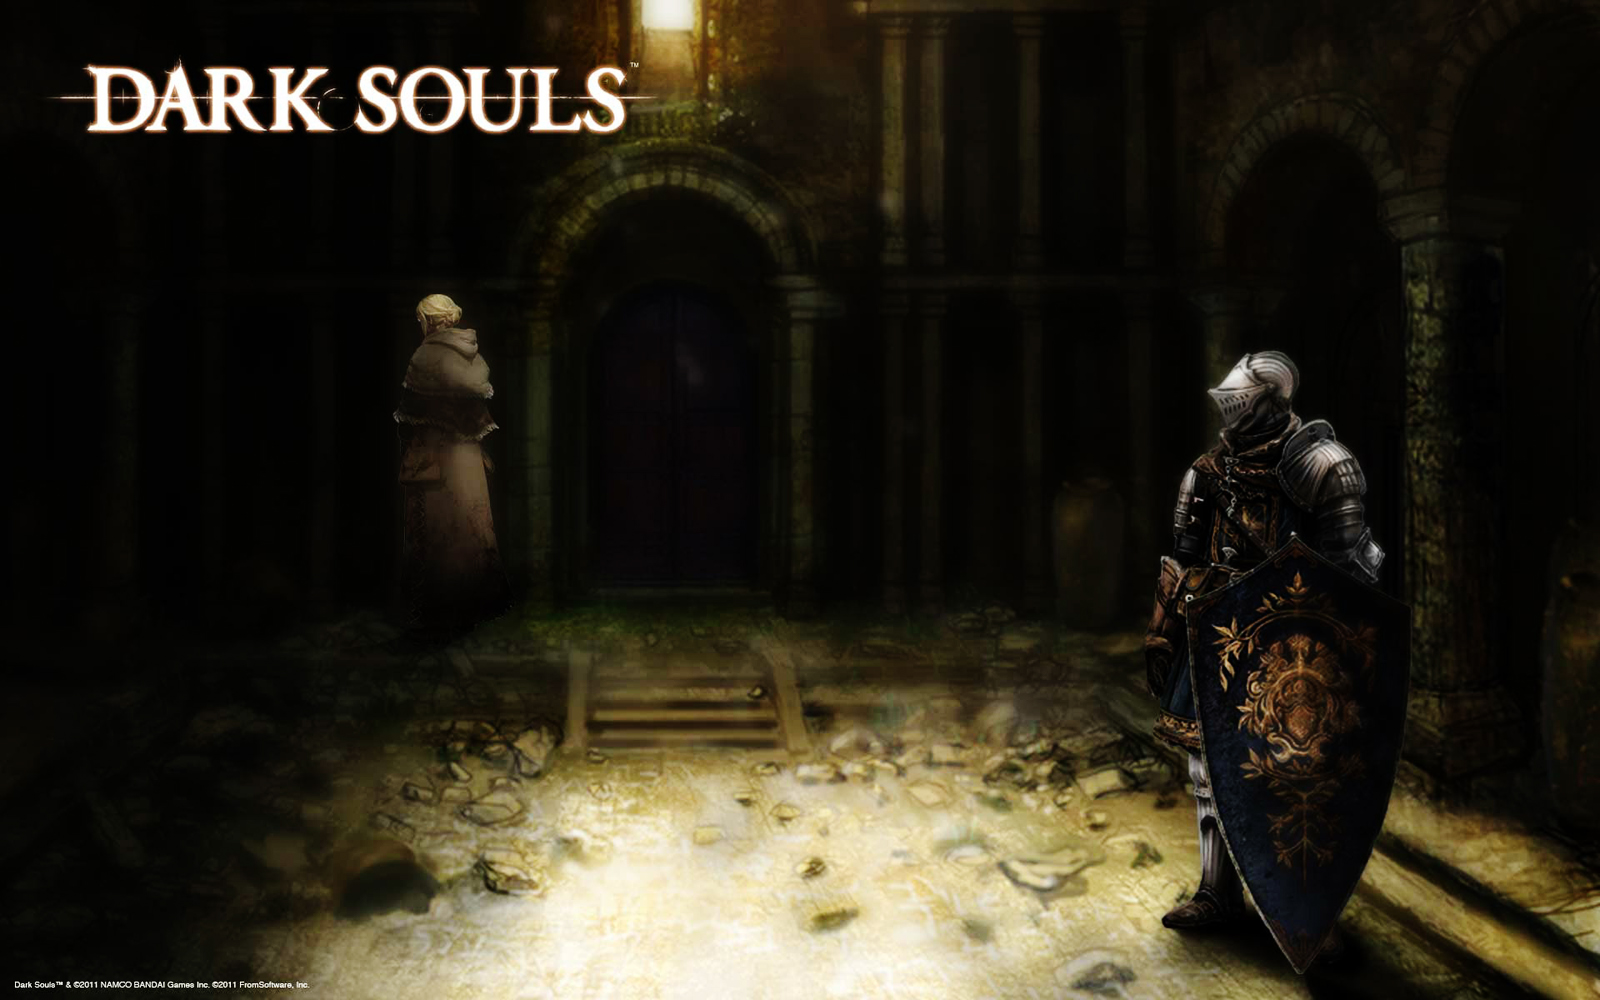 Dark Souls HD Wallpapers and DVD Cover Reviewed by PhotoGaloreon 1600x1000